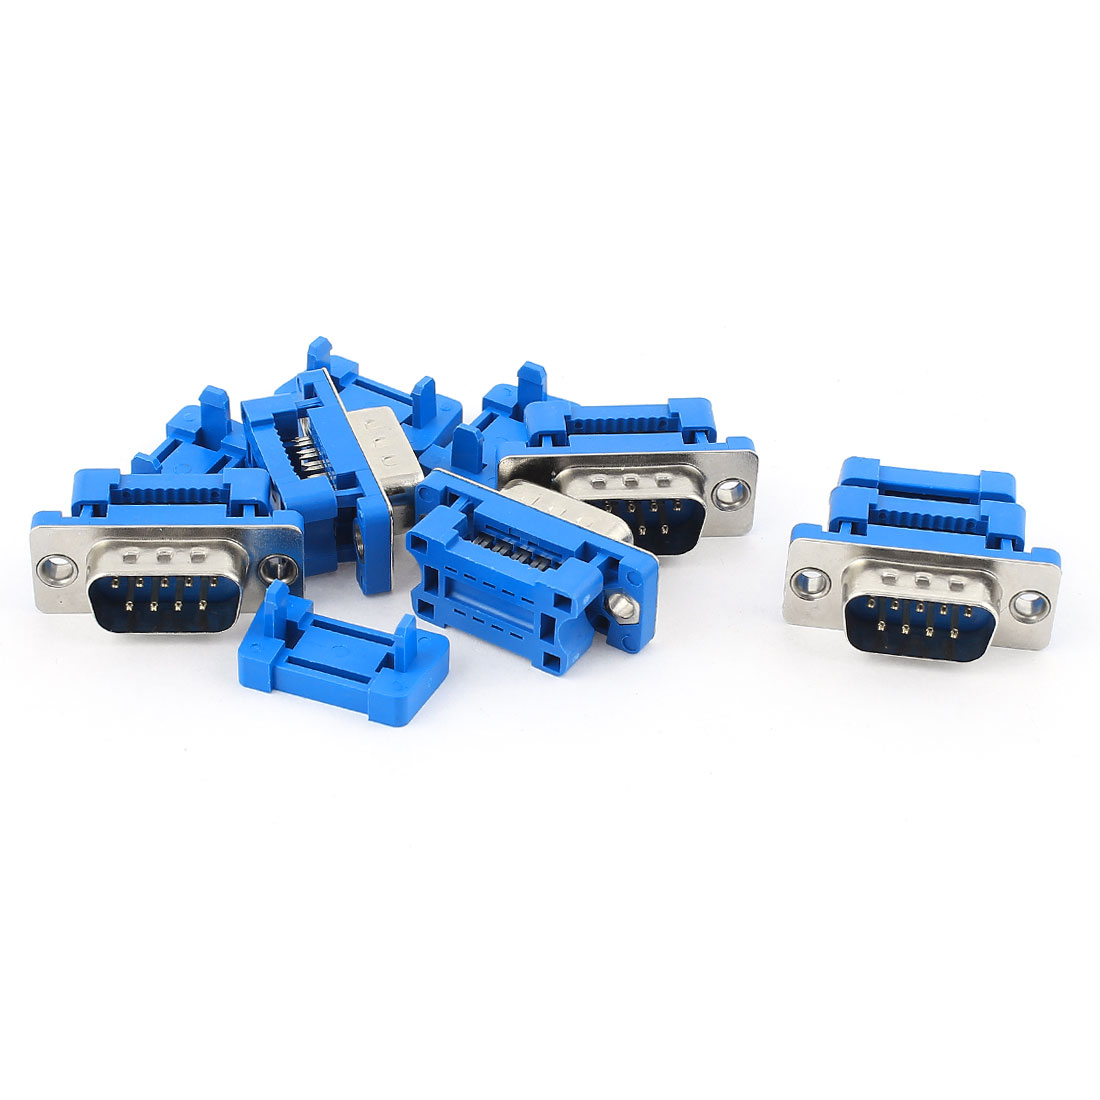 5pcs D-SUB DB9 9 Pin Male IDC Type Connector for Flat Ribbon Cable